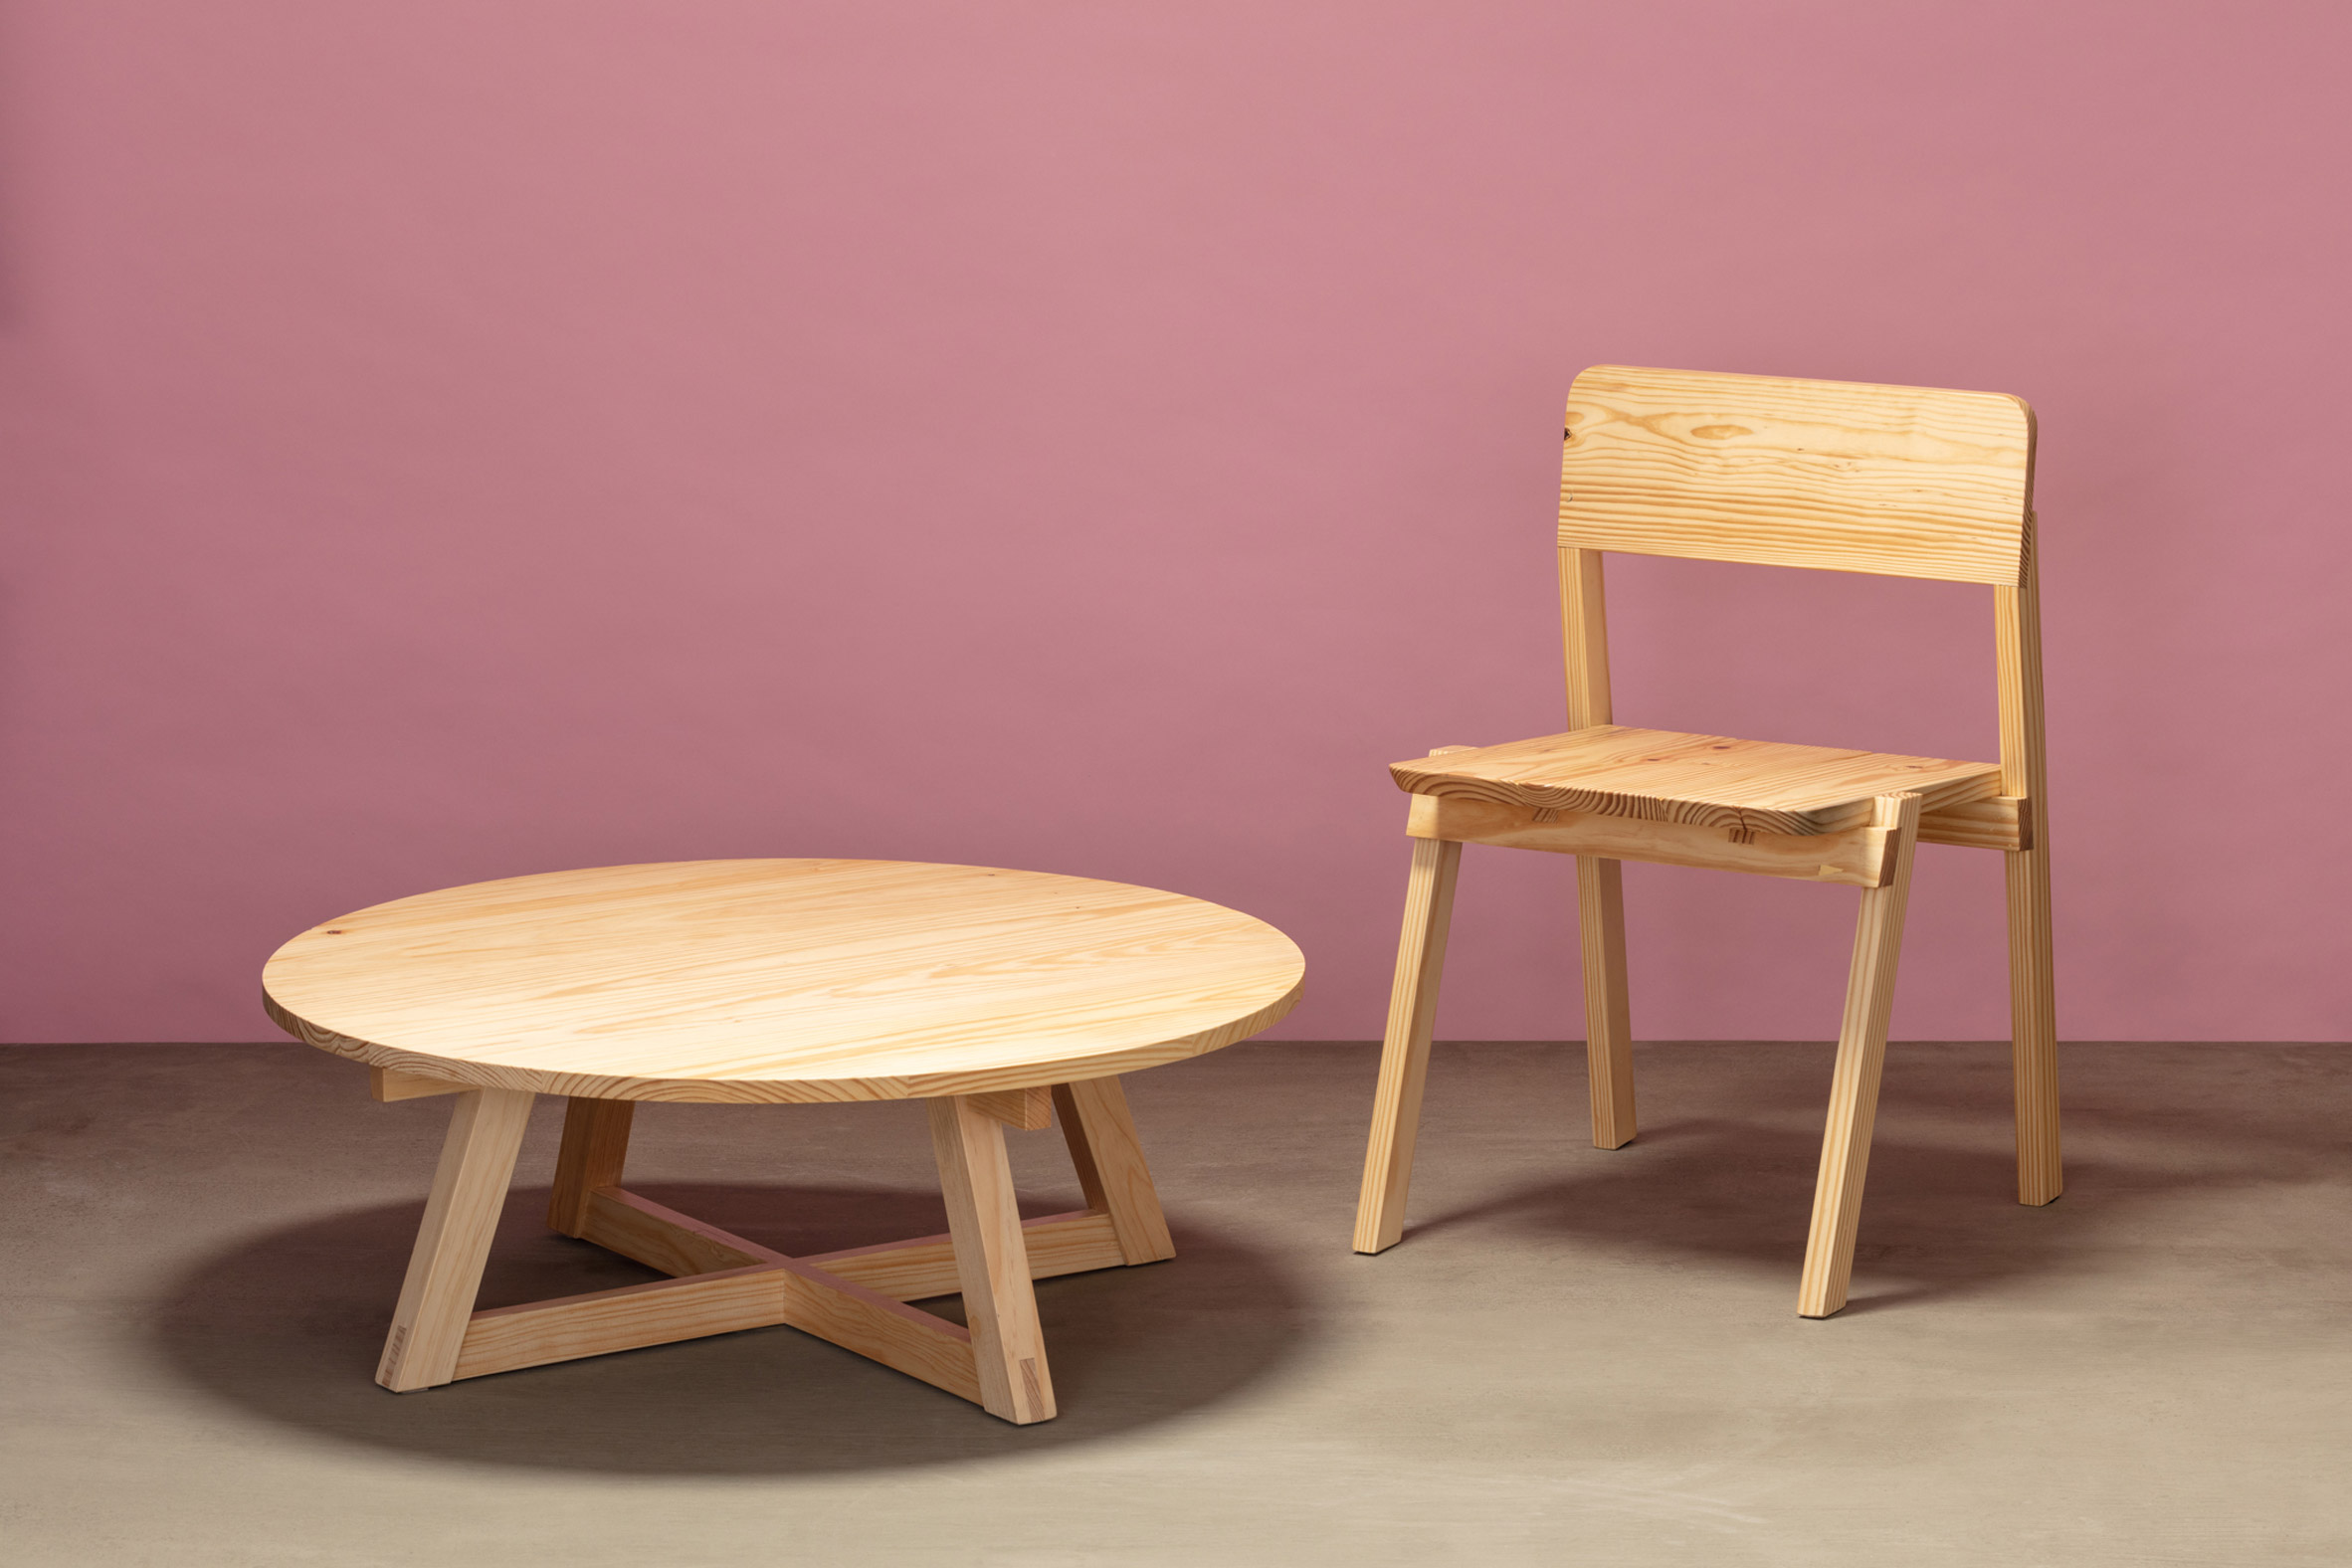 Coffee table and dining chair from Jorge Diego Etienne's Tempo collection for Techo